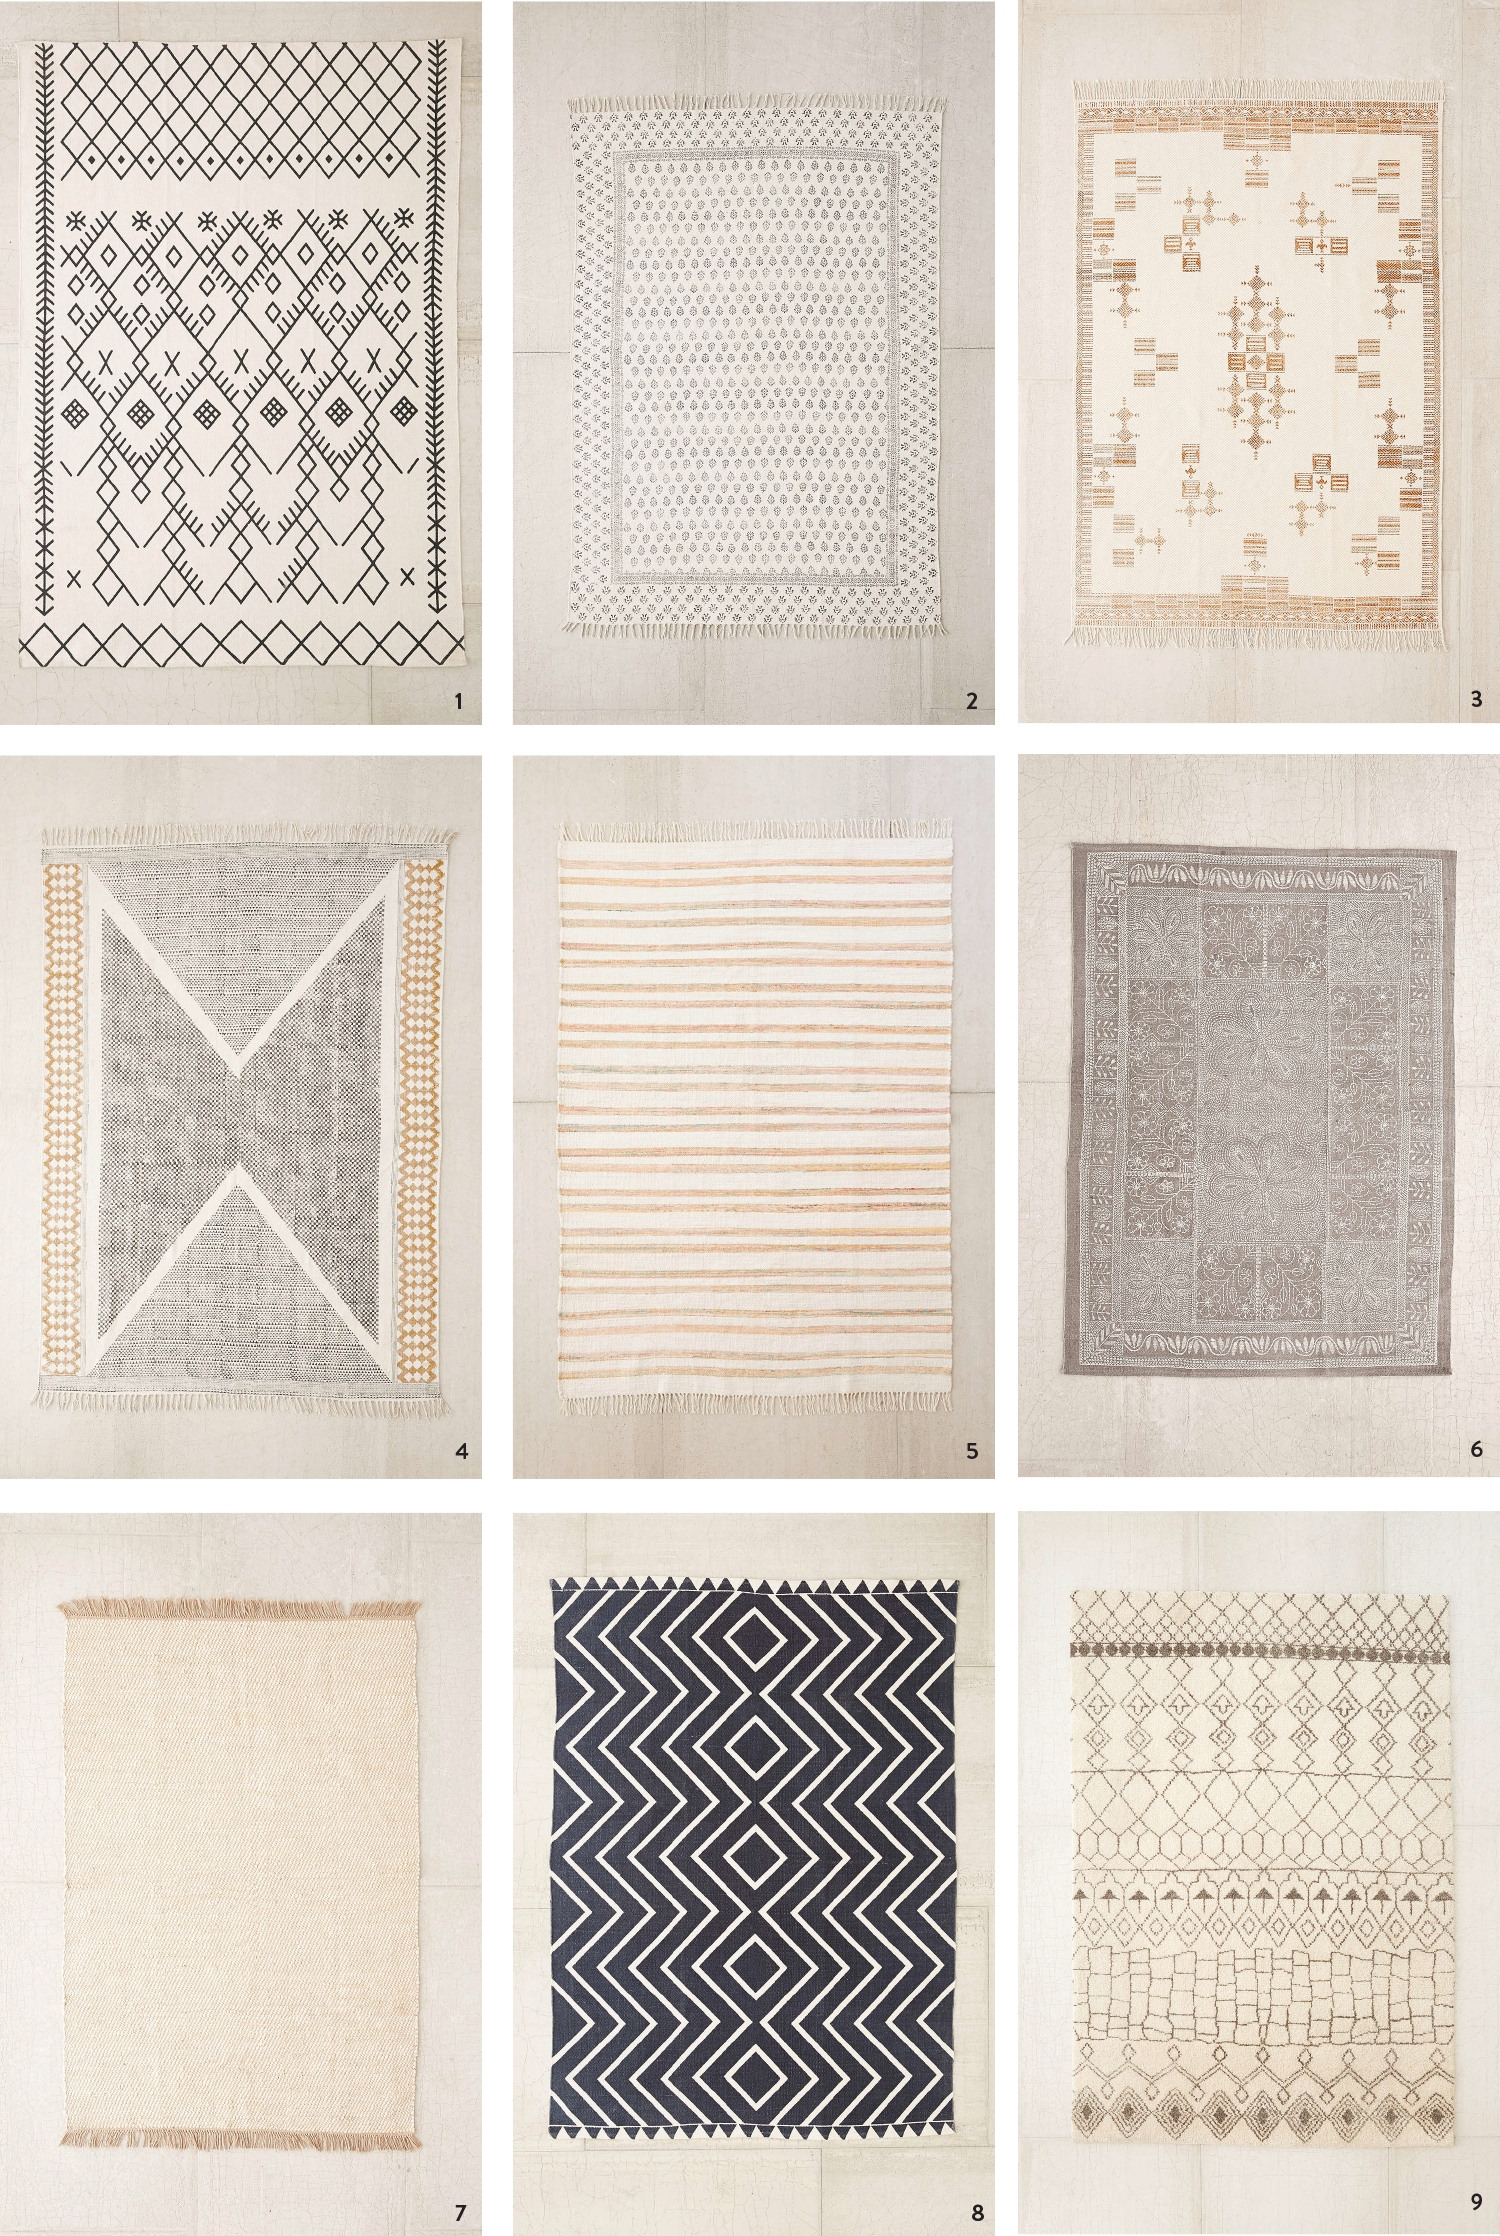 Urbanoutfitters Rugs Roselawnlutheran Regarding Urban Outfitters Rugs (Image 13 of 15)